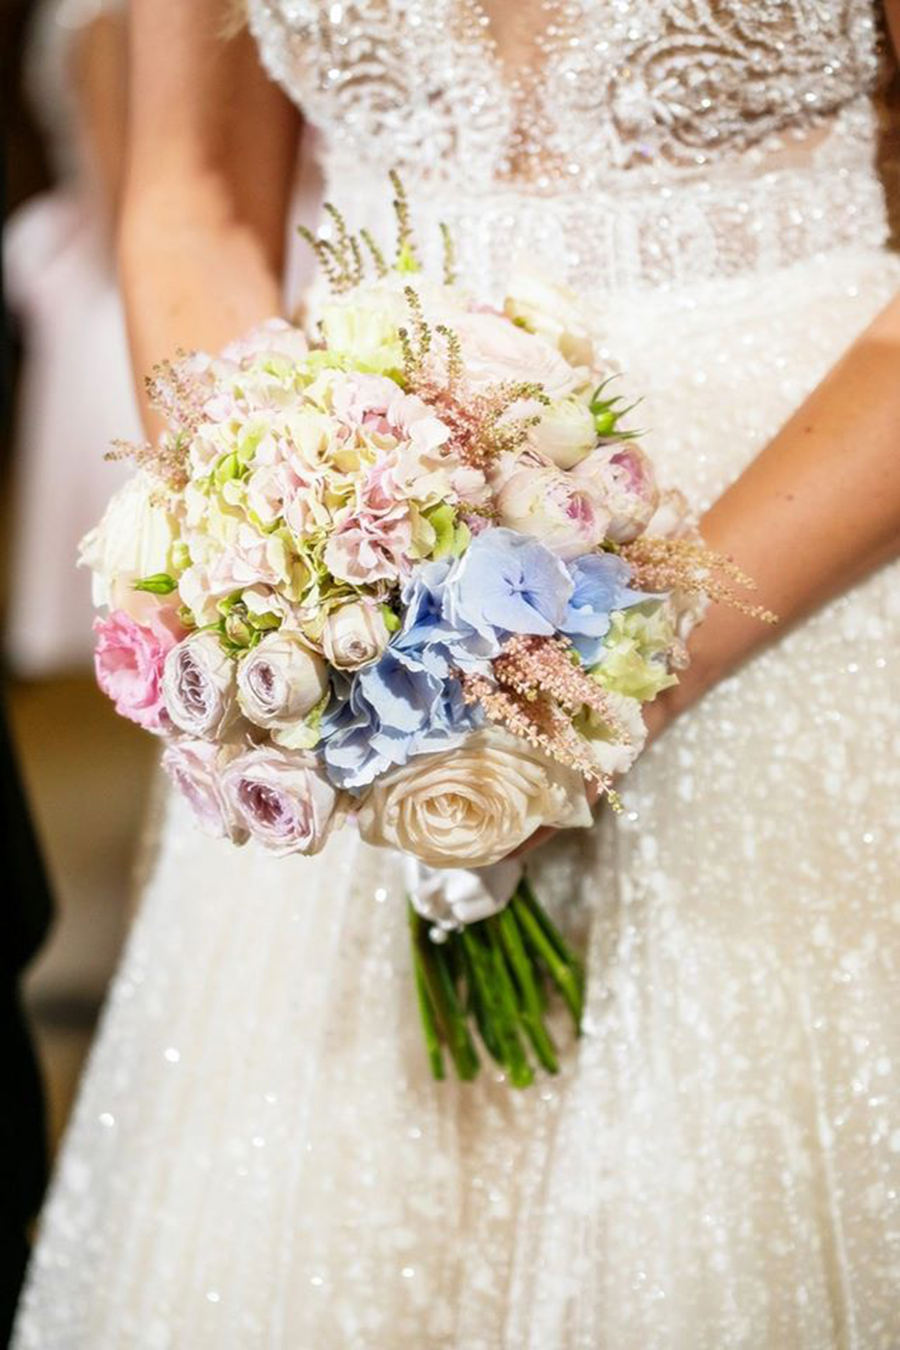 Classy & elegant wedding with pastel colors